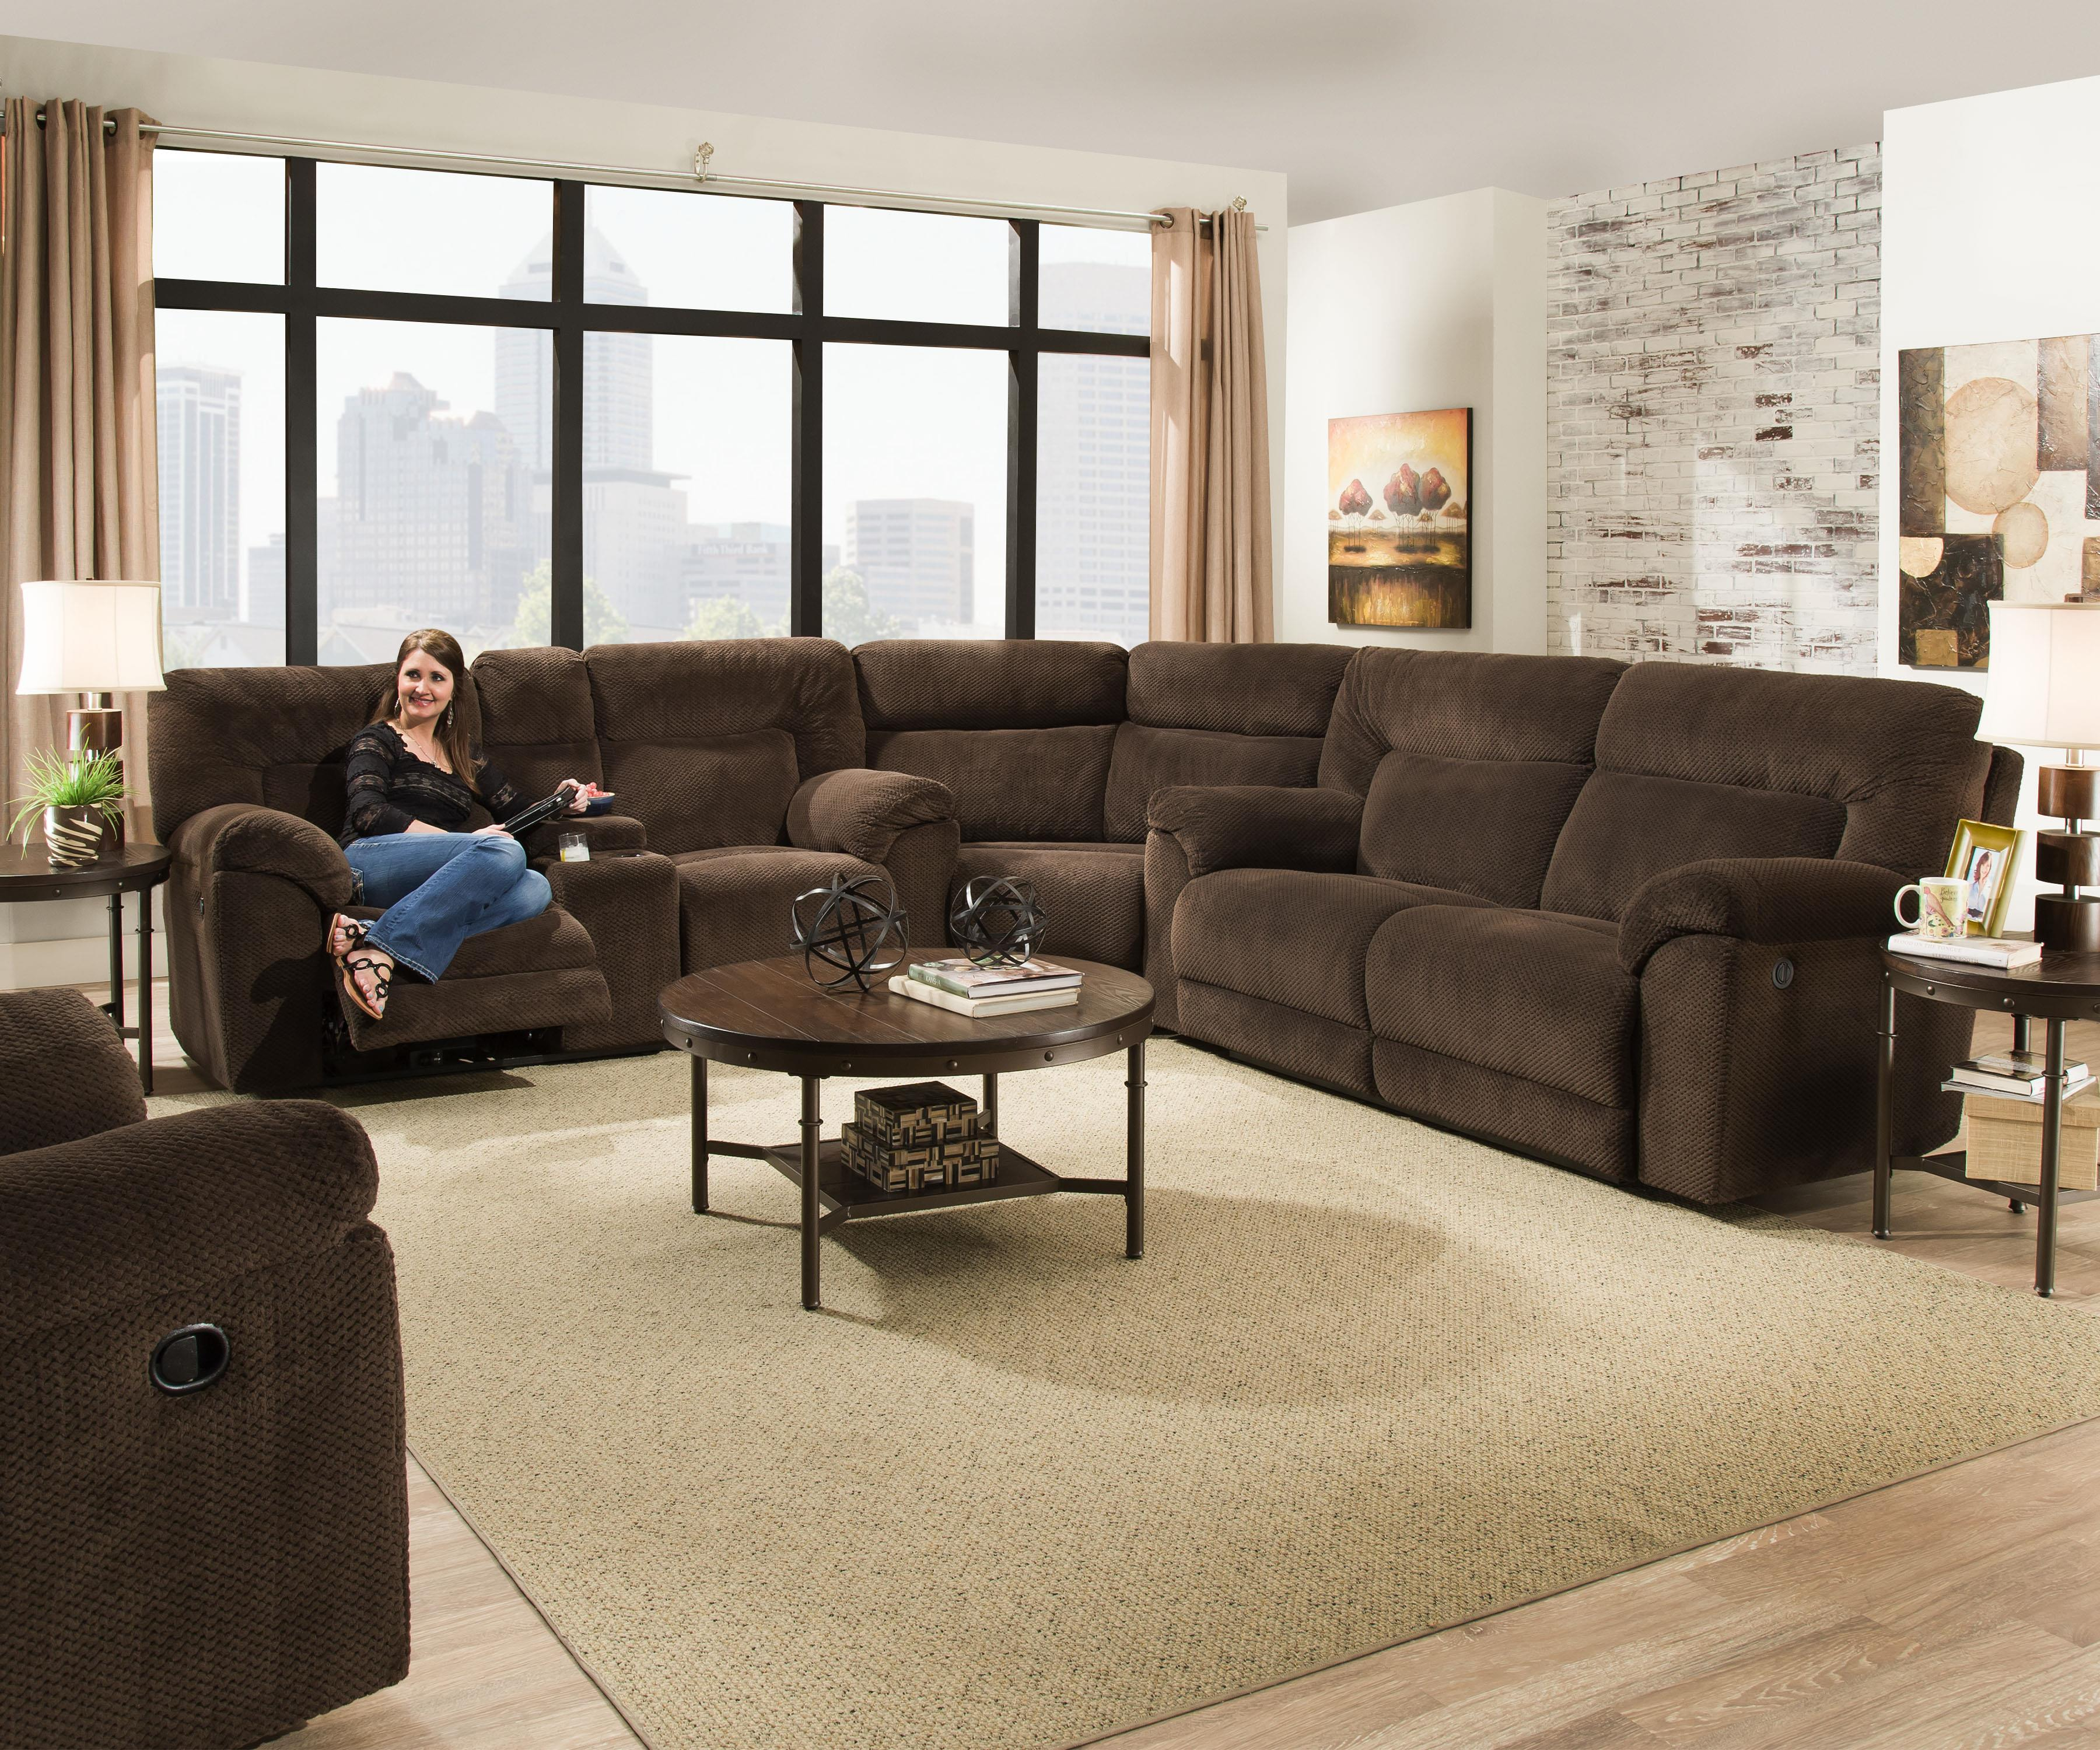 50570 Reclining Sectional Sofa by United Furniture Industries at Household Furniture